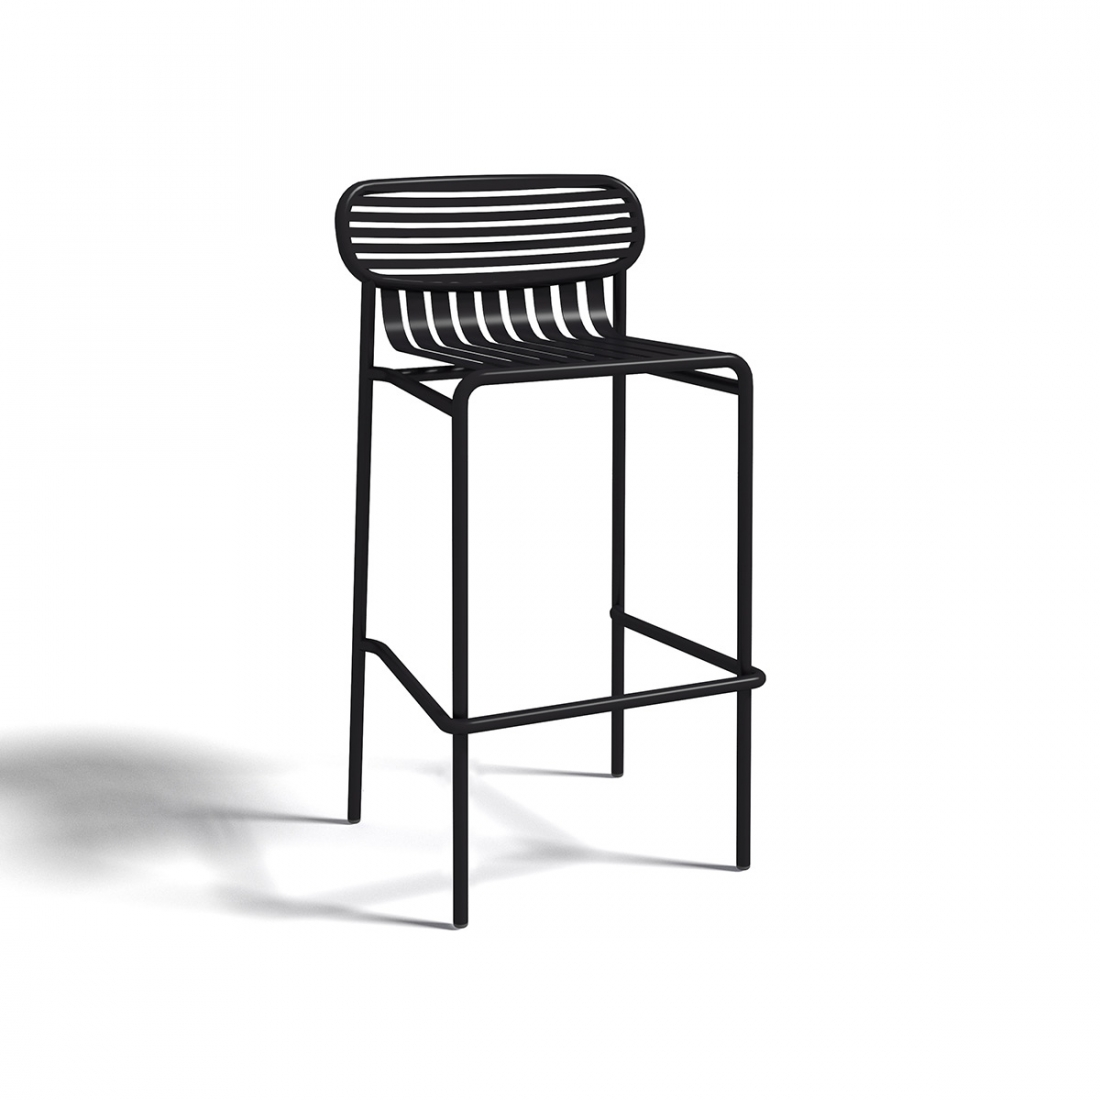 tabouret de bar exterieur maison design. Black Bedroom Furniture Sets. Home Design Ideas